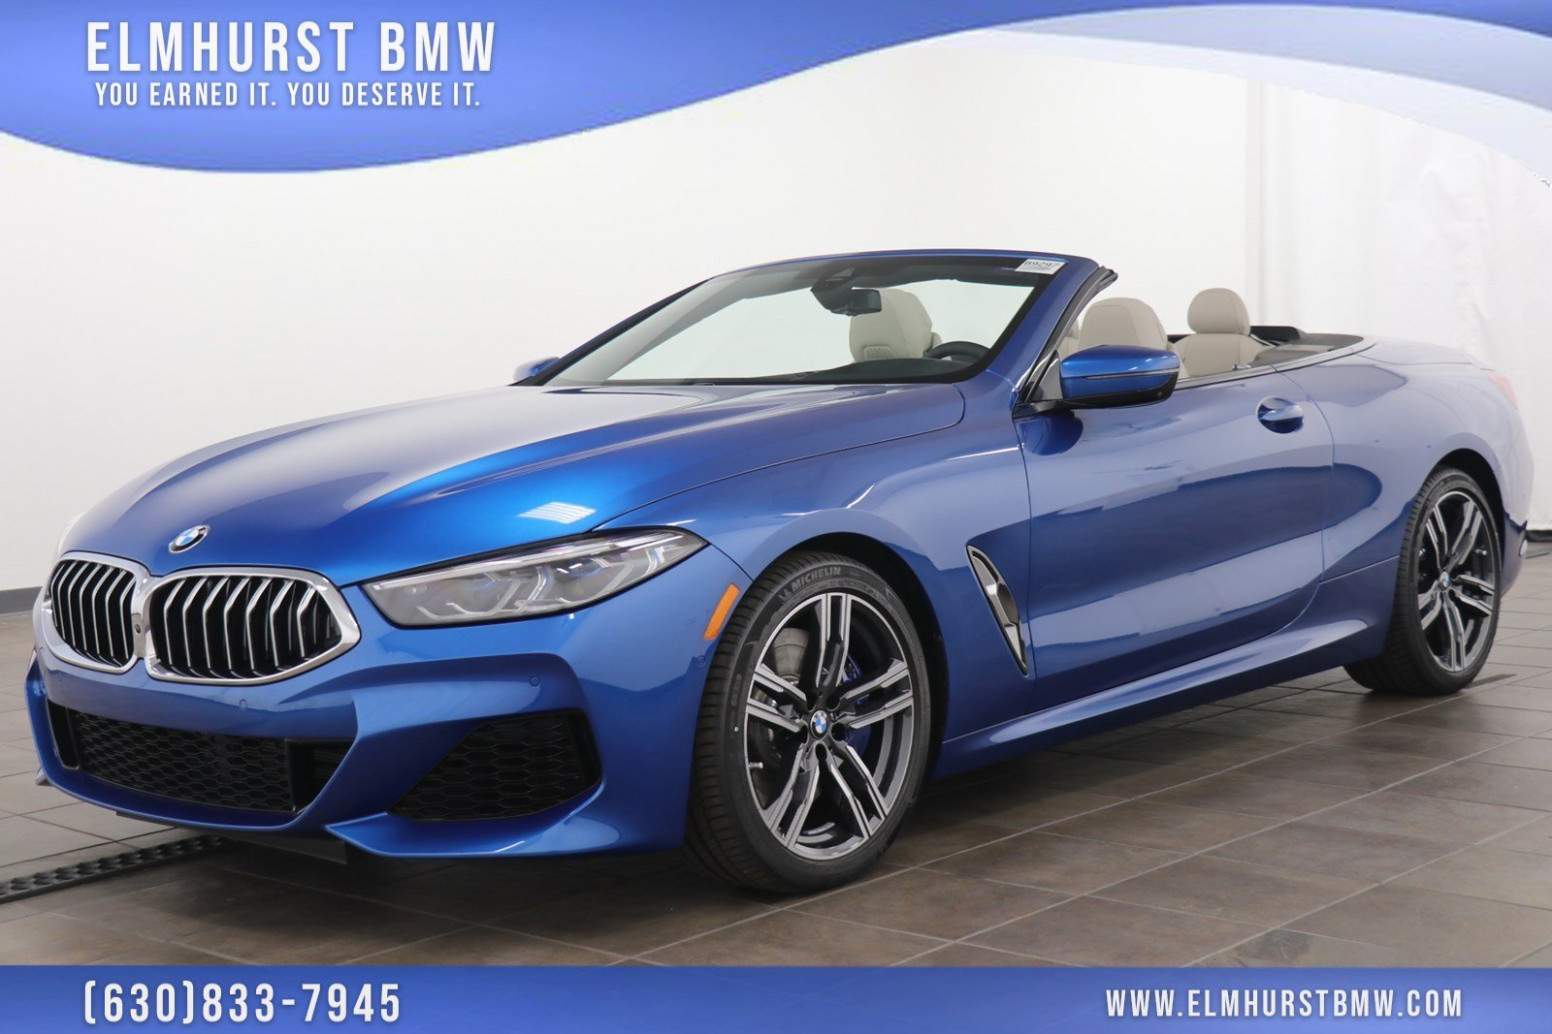 New 9 BMW 9 Series 940i Convertible With Navigation - 2020 bmw convertible for sale